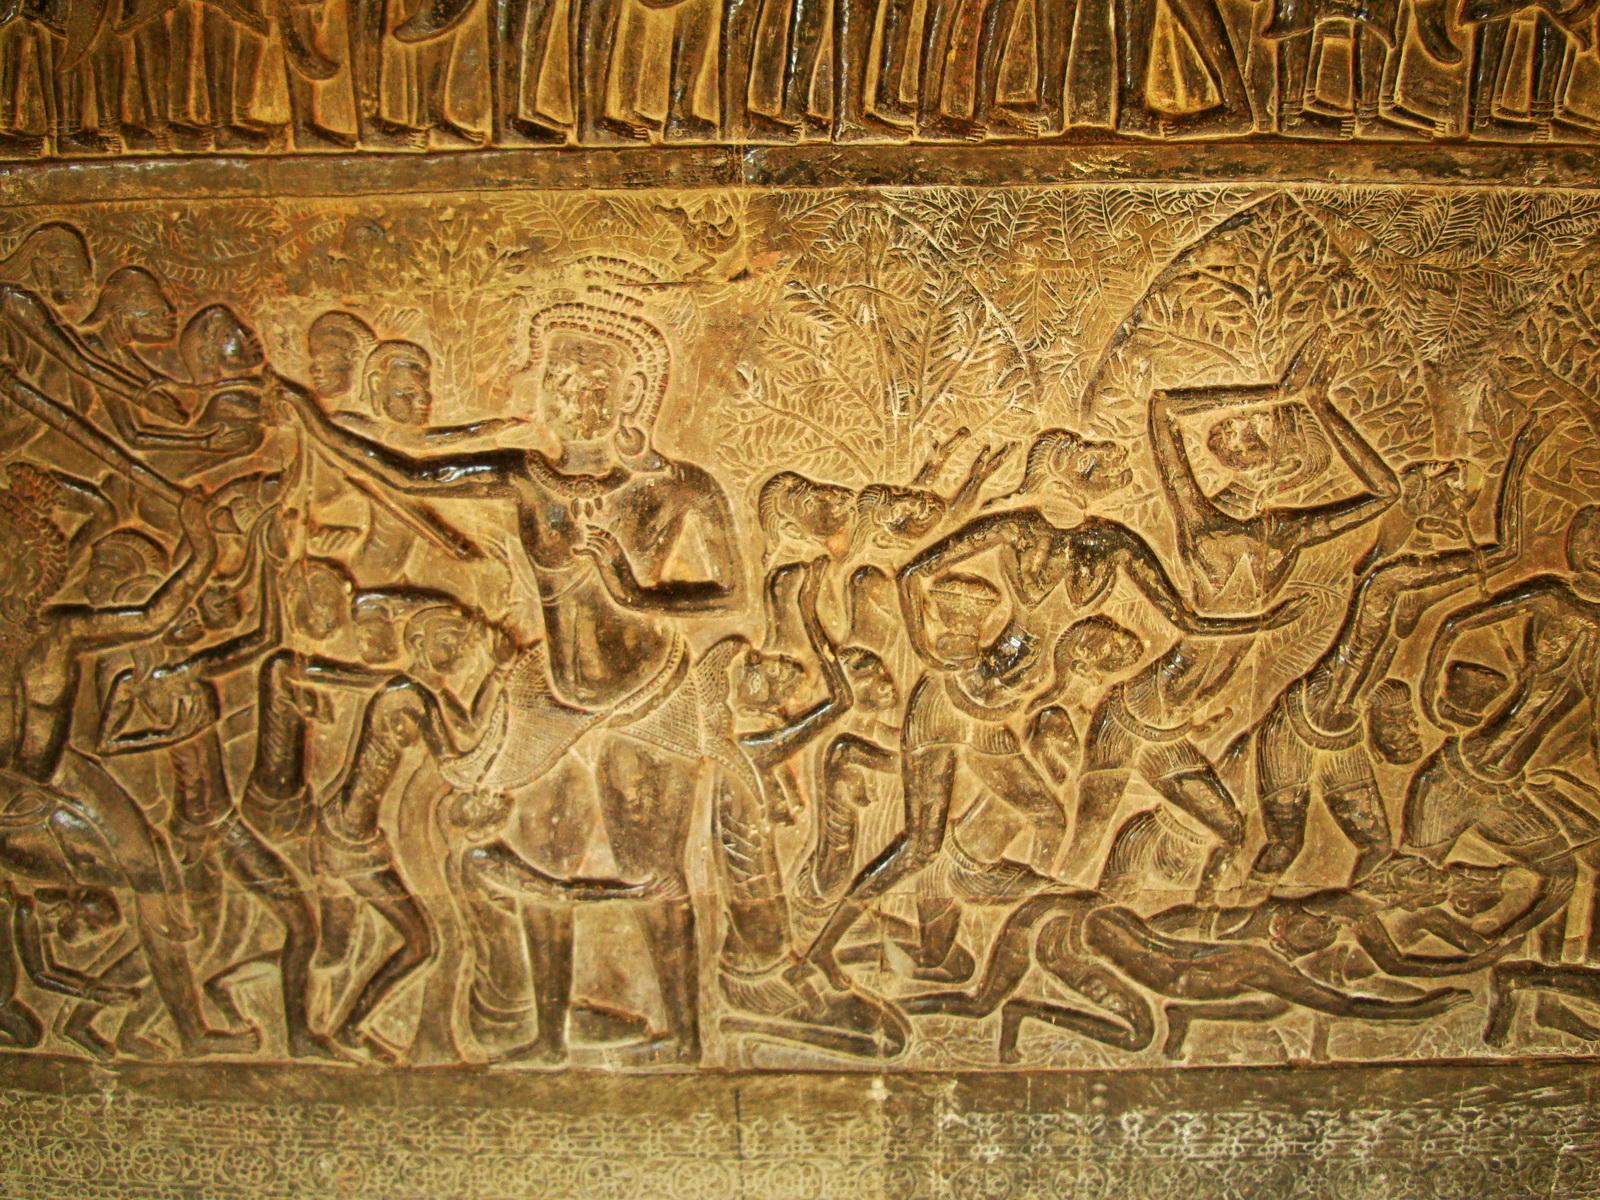 Angkor Wat Bas relief S Gallery E Wing Heavens and Hells 08